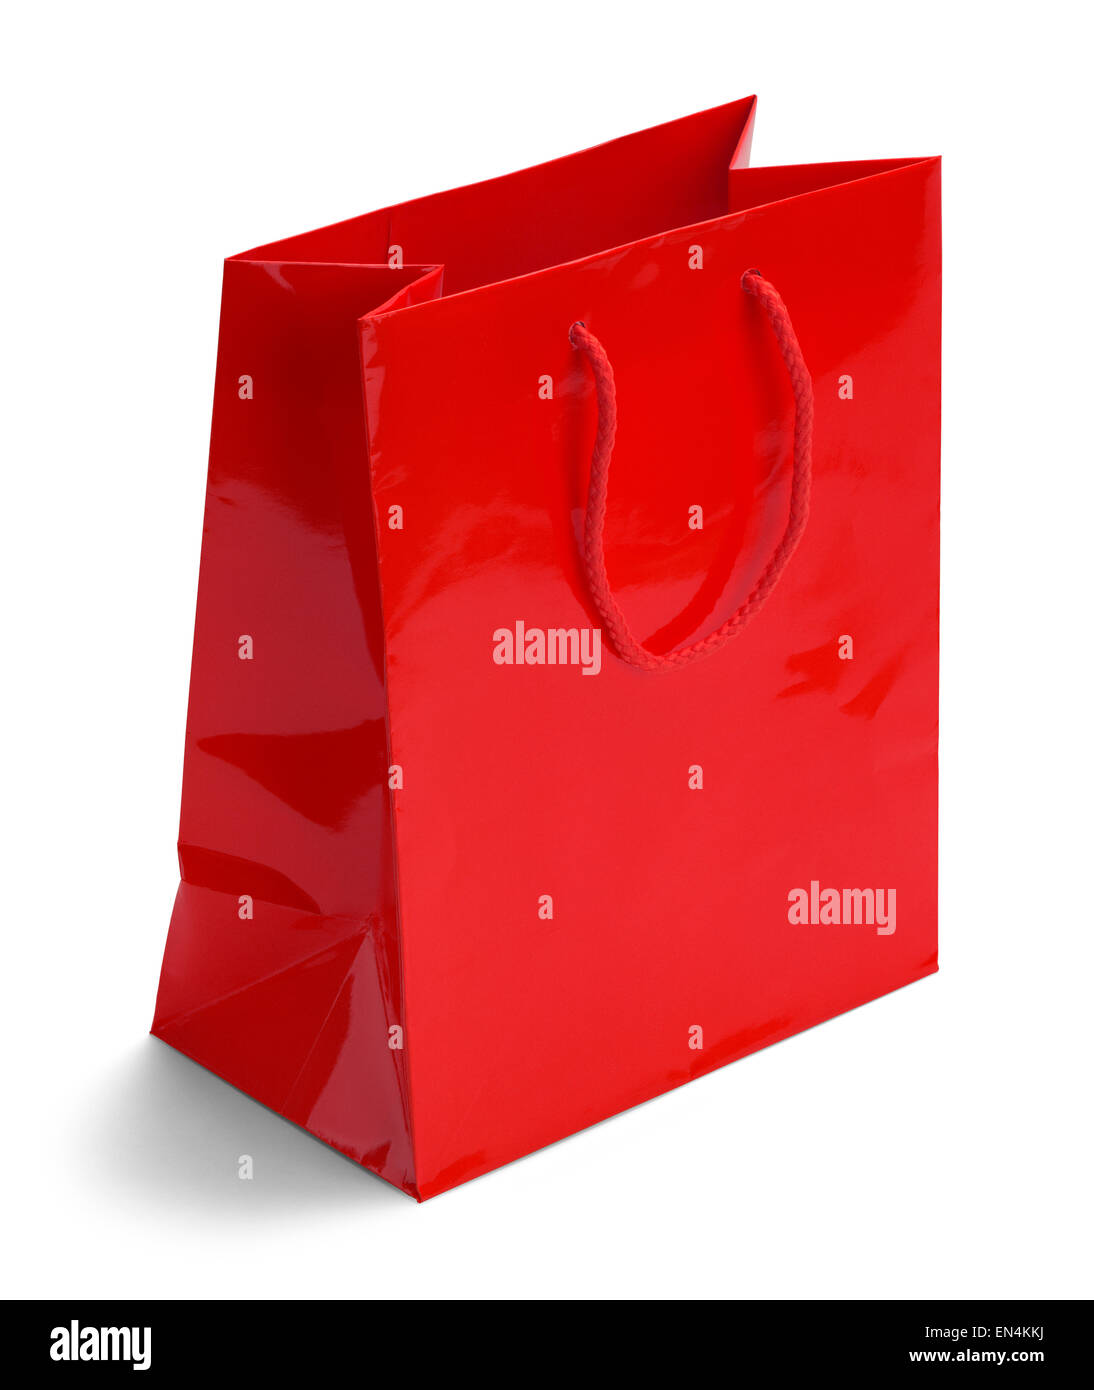 Shiny Red Retail Shopping Bag Isolated on a White Background. - Stock Image